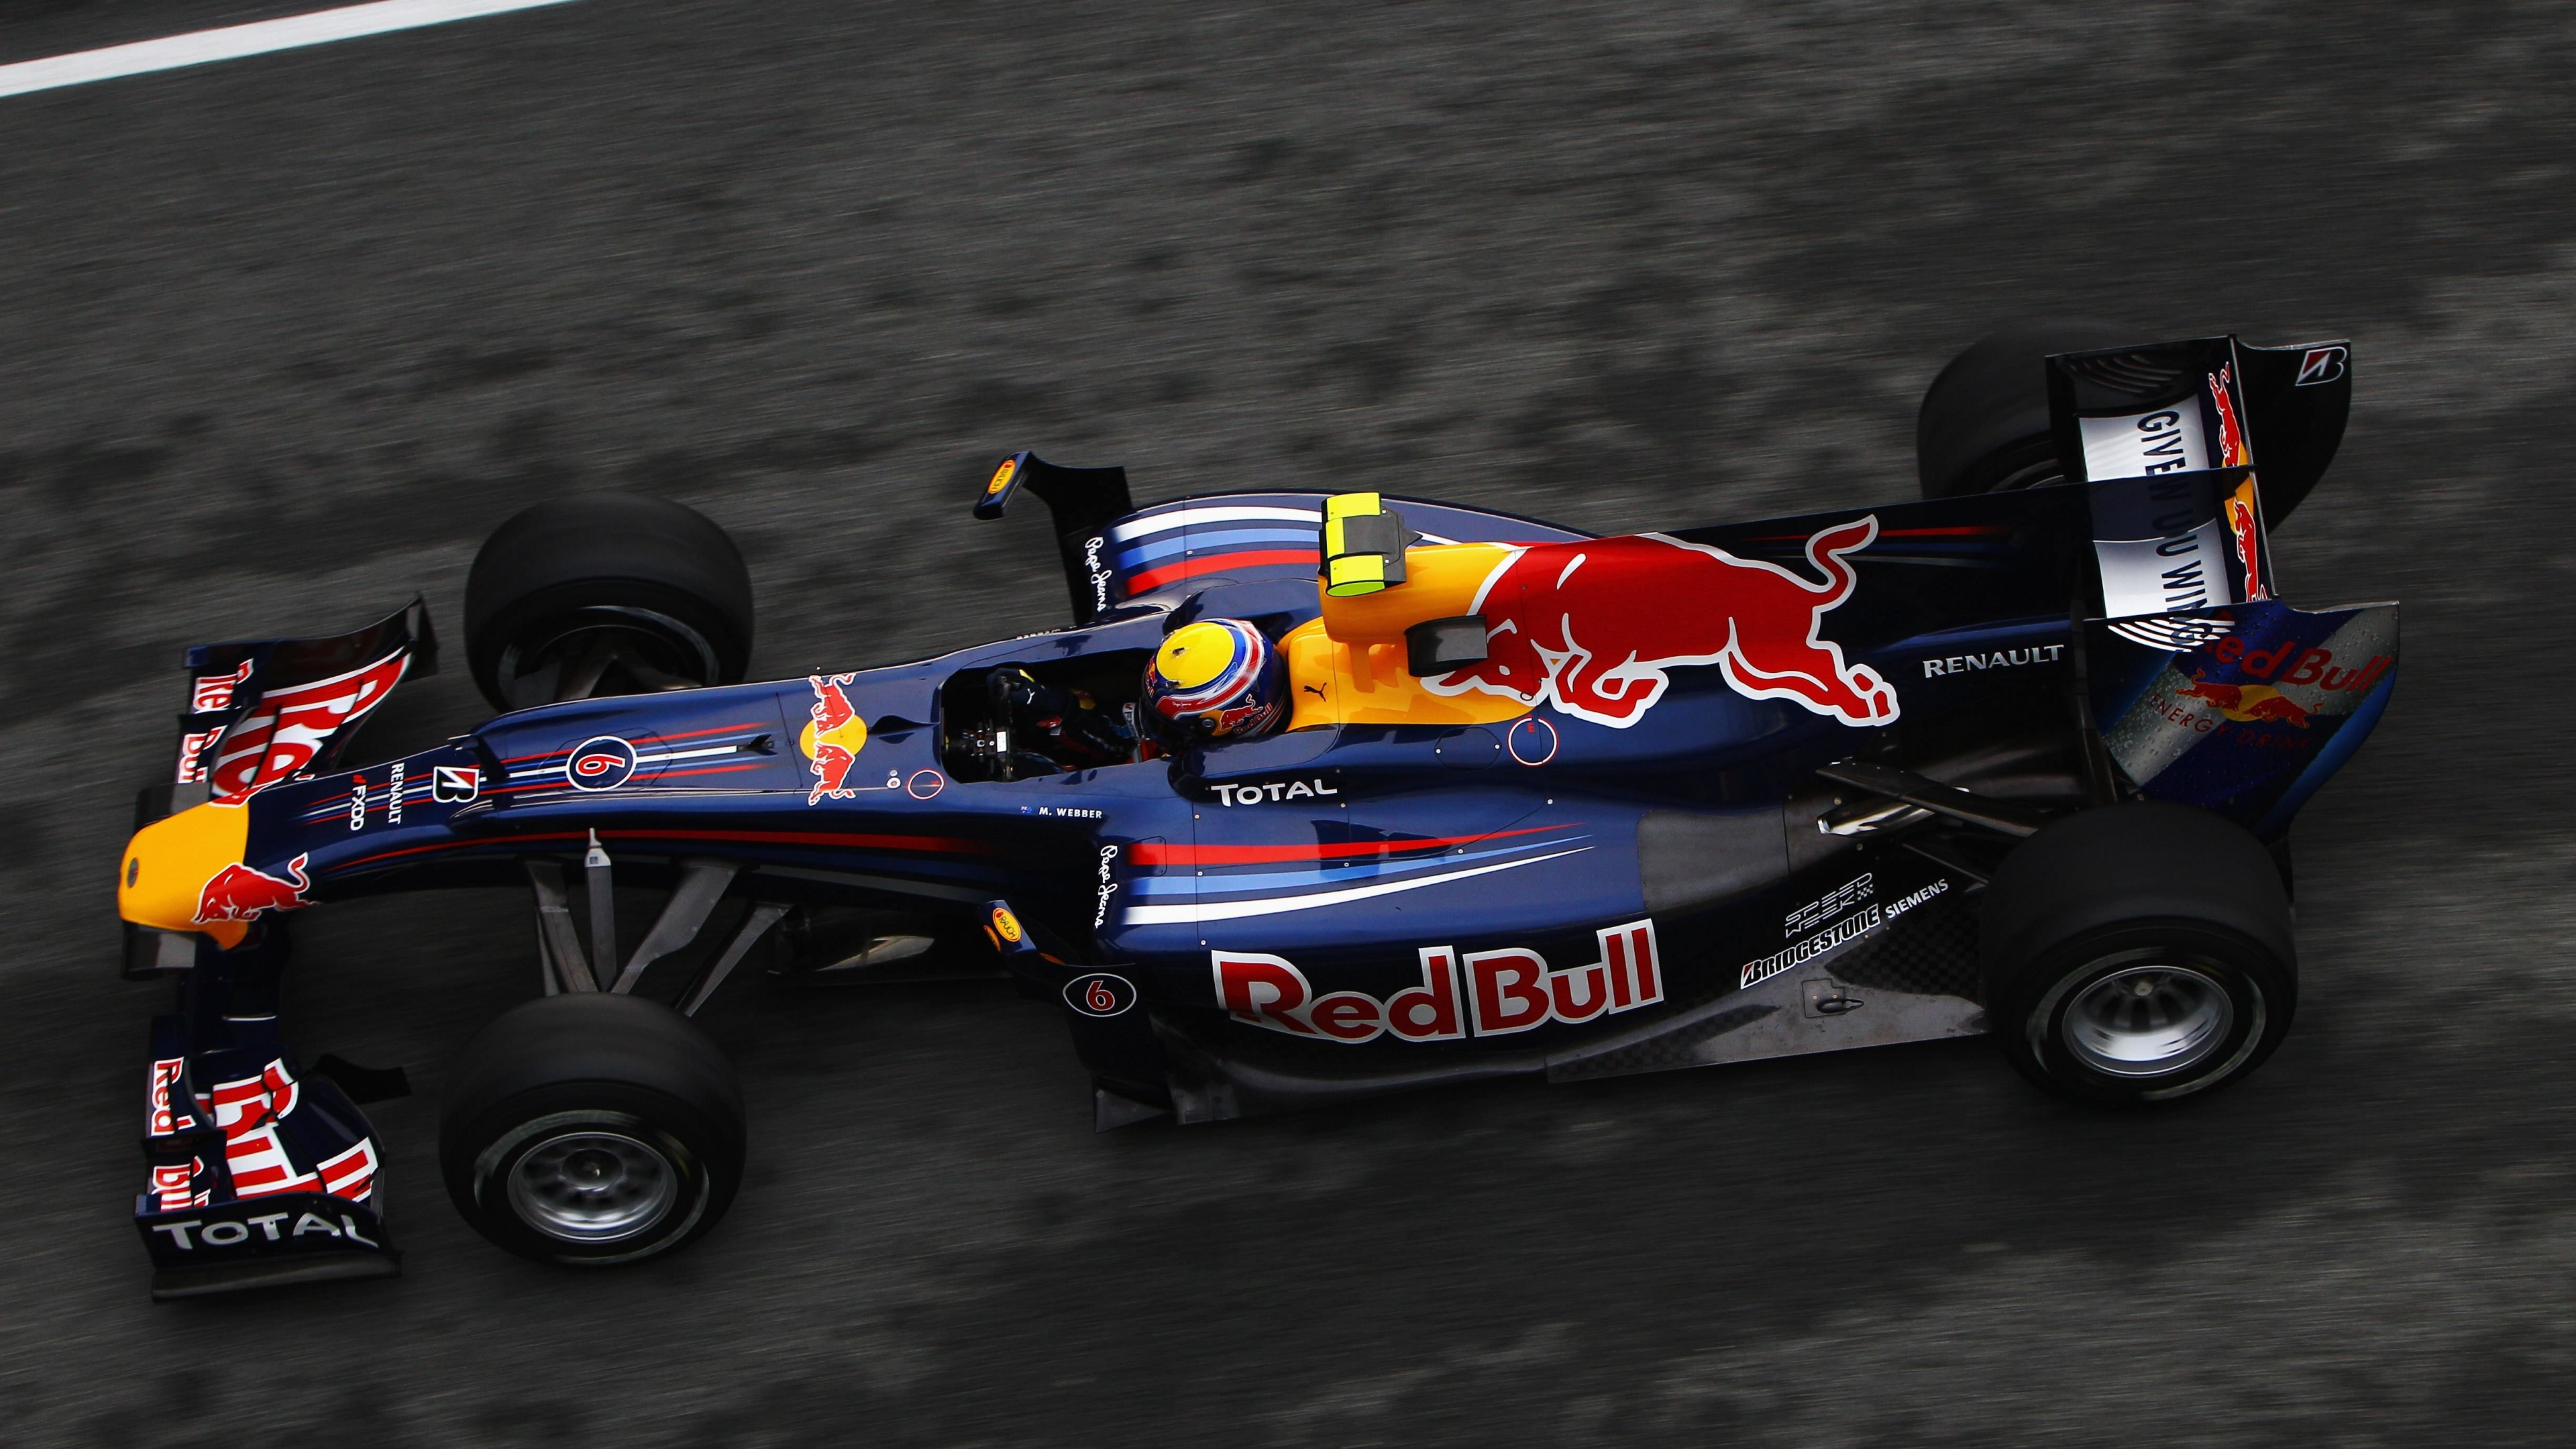 F1 Red Bull Team Wallpaper for Desktop 4K 3840x2160